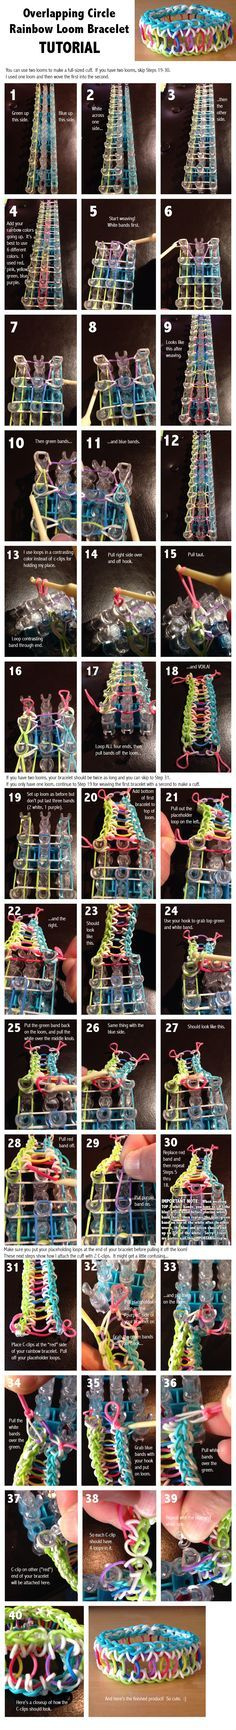 Here is the tutorial for making the rainbow patterned Overlapping Circle Rainbow Loom Bracelet. Please let me know if you have any isues or problems with this tutorial!